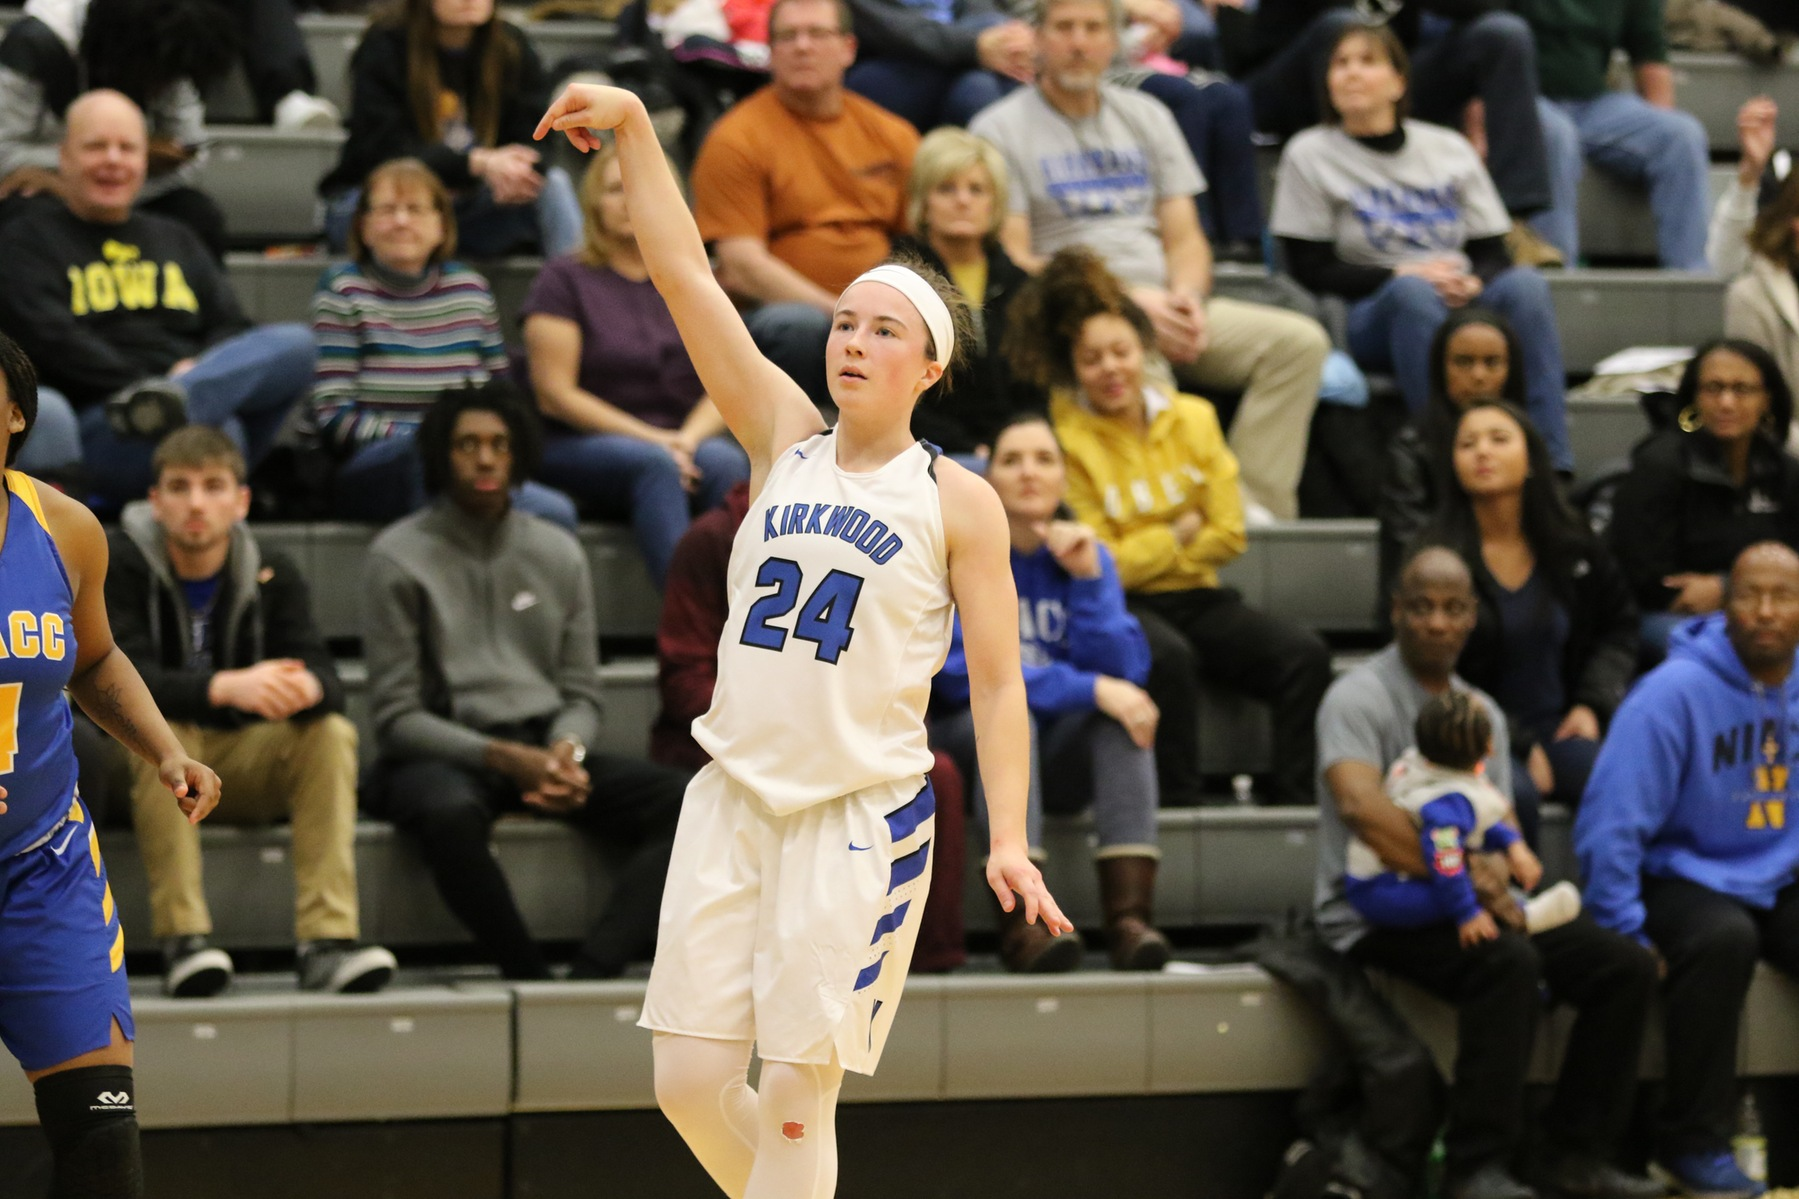 Former West Branch prep Haley Mullinnix scored 11 of her 13 points in the first quarter as Kirkwood defeated Ellsworth, 103-48, at Johnson Hall in Cedar Rapids, Iowa, on Thursday, Jan. 31, 2019.